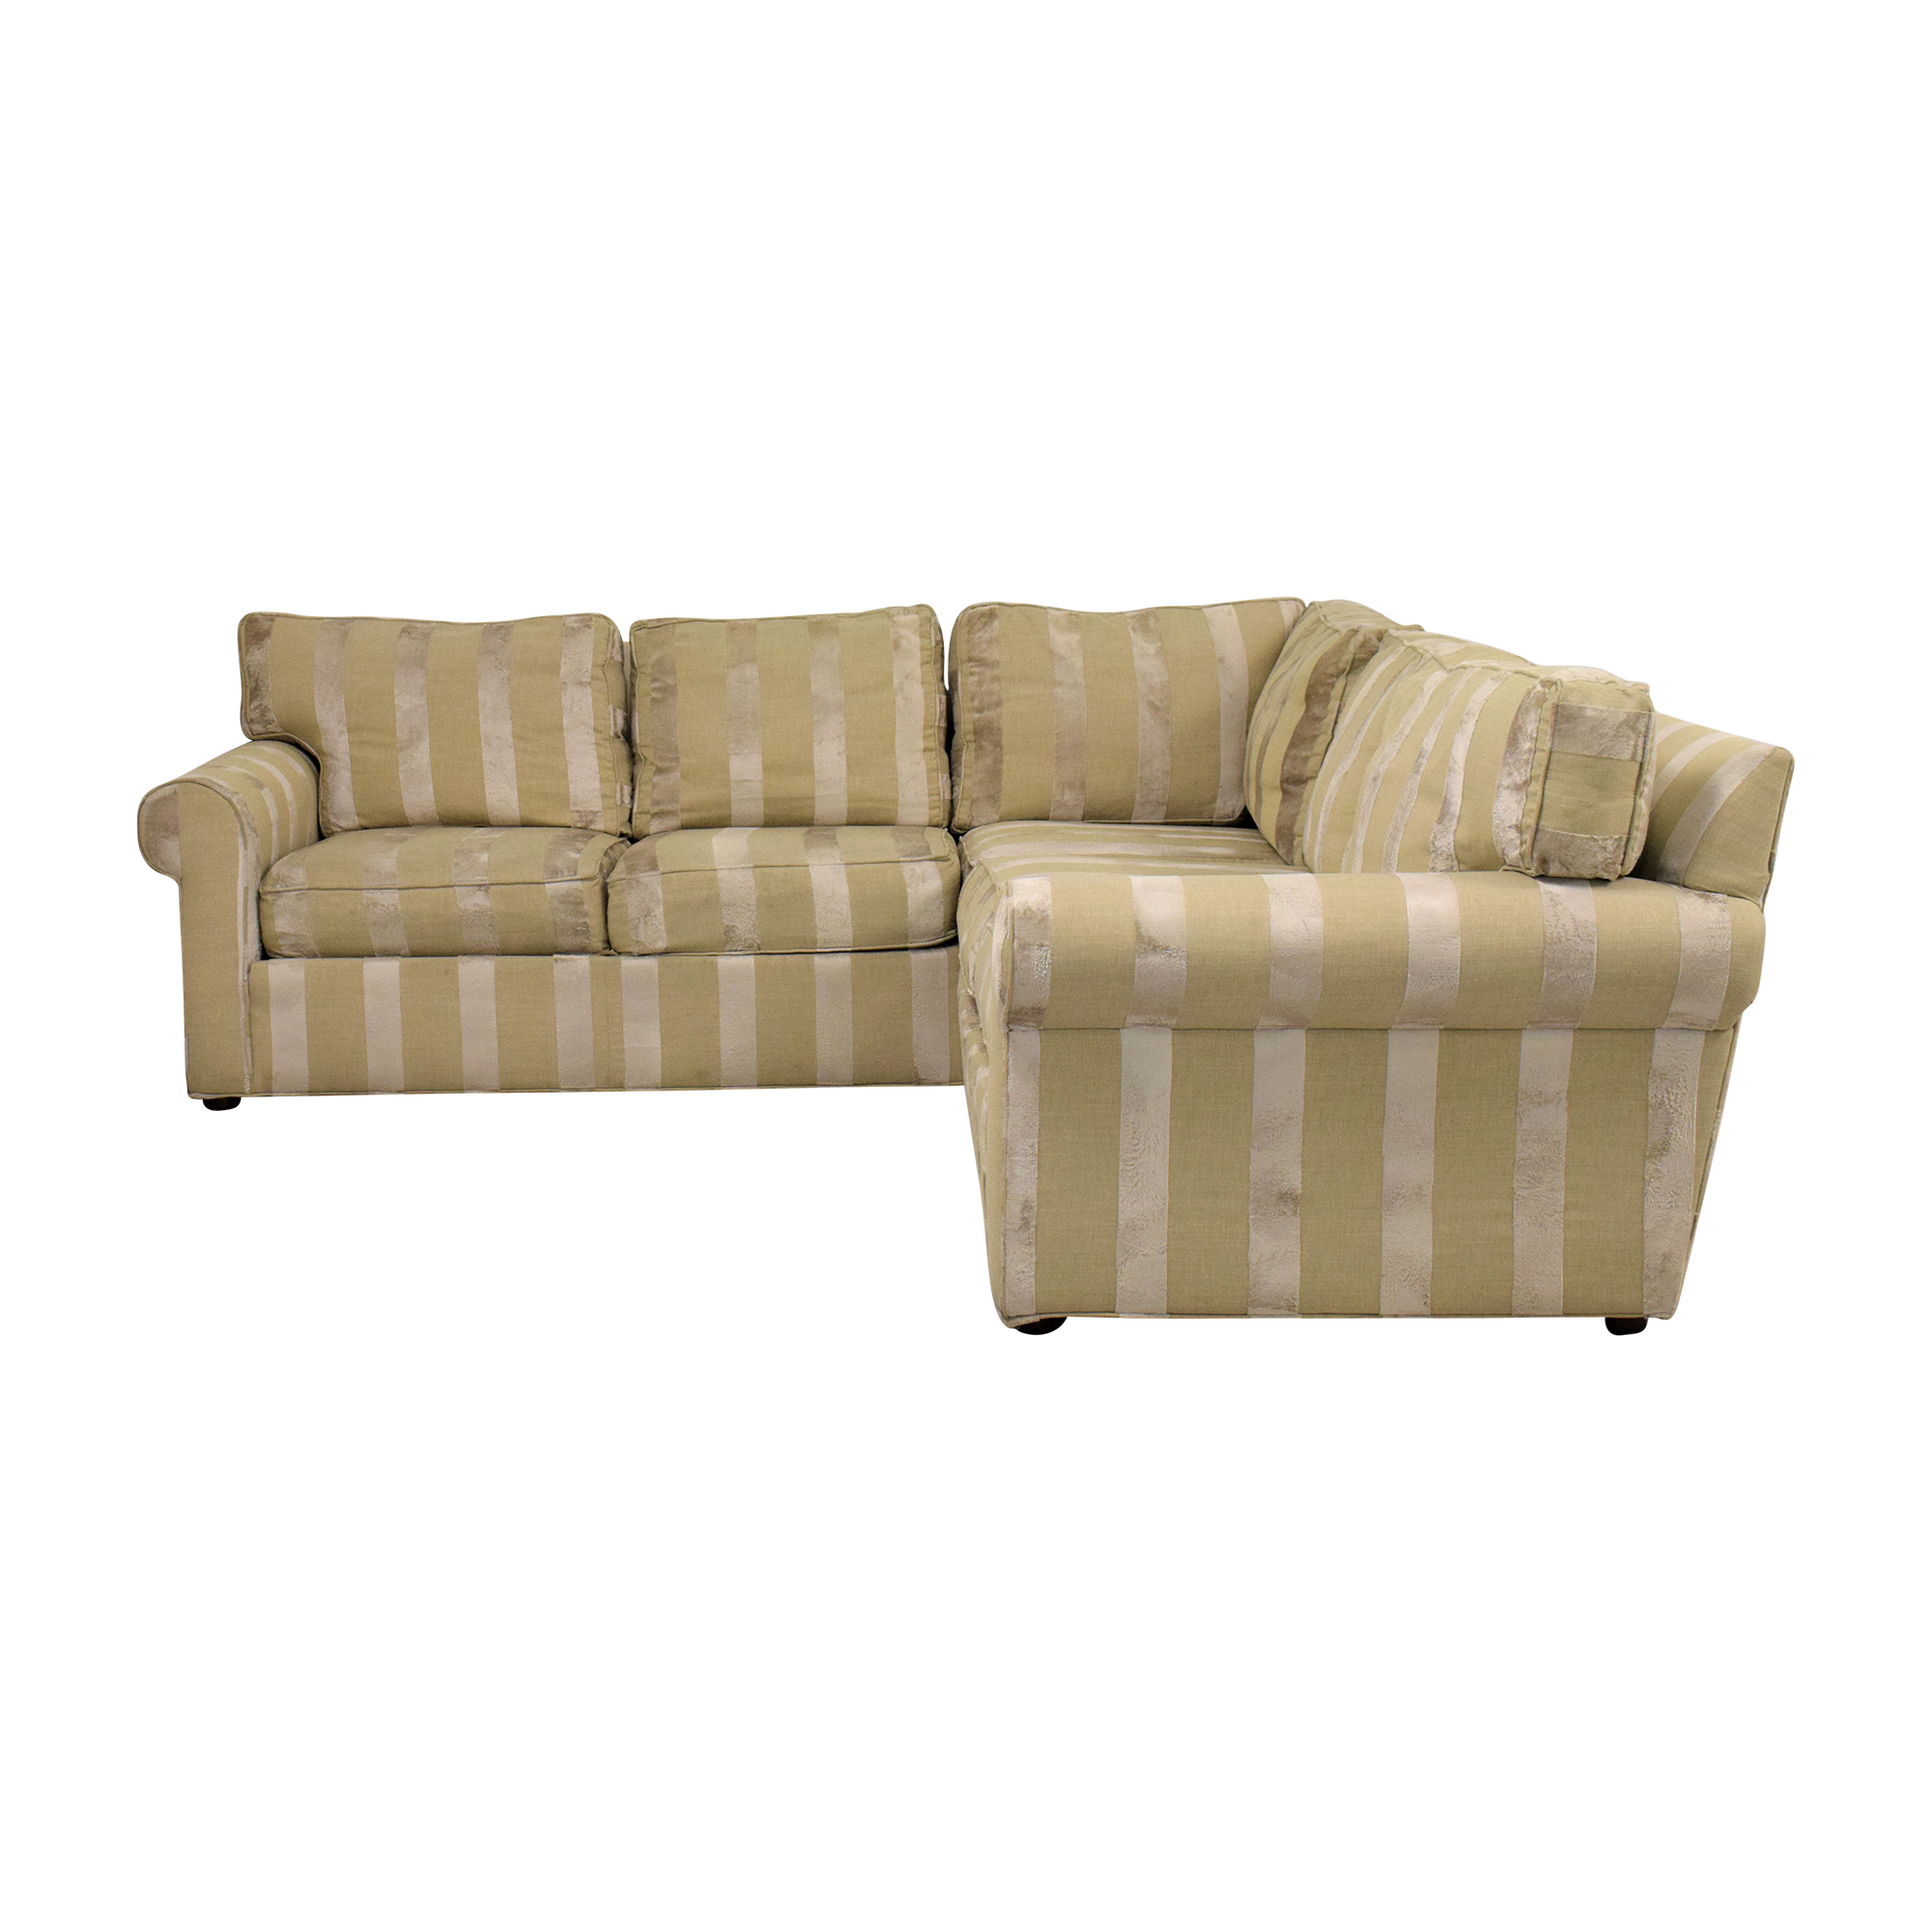 Ethan Allen Ethan Allen Bennet Sectional Sofa for sale